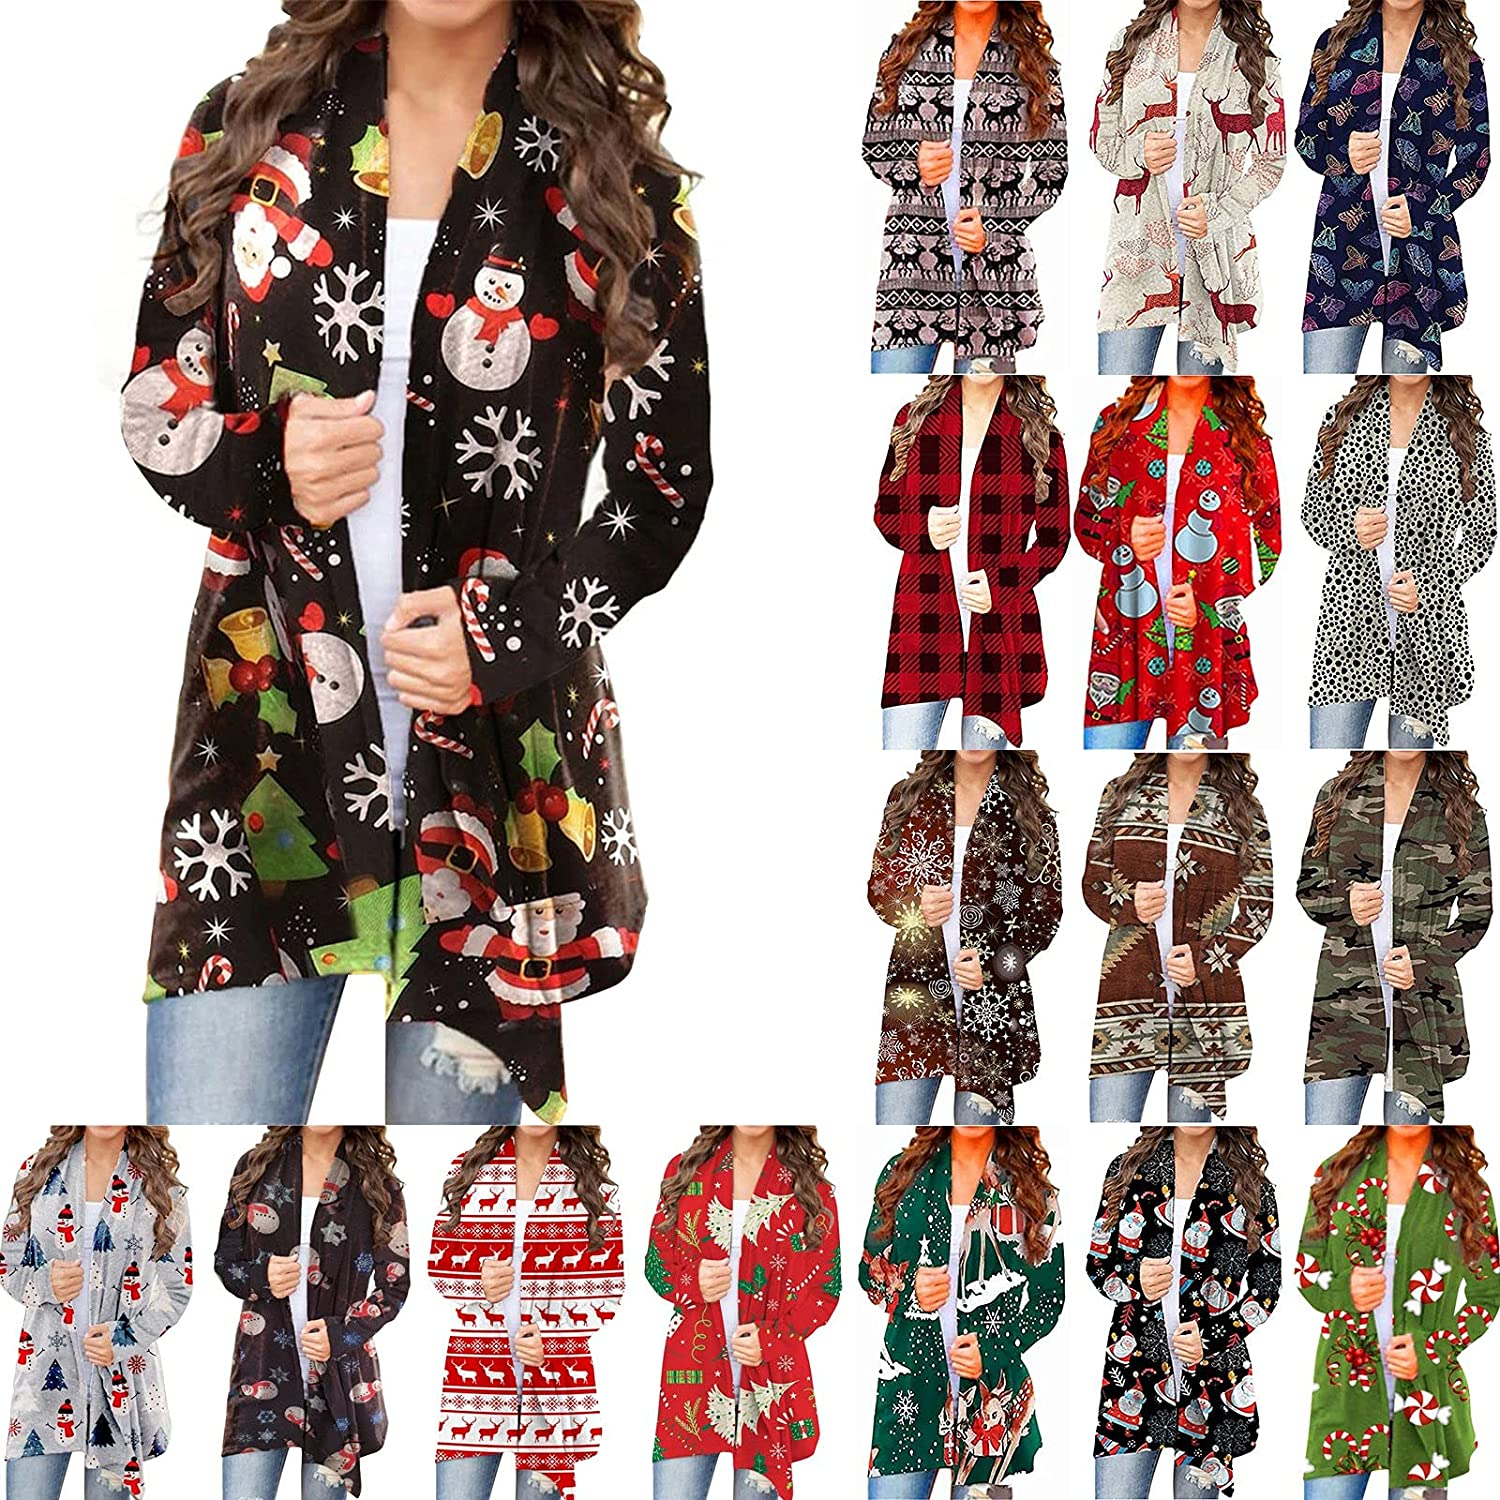 VonVonCo Cardigan Sweaters for Women Coat Christmas Open Front Long Sleeve Blouses Coat Casual Jacket